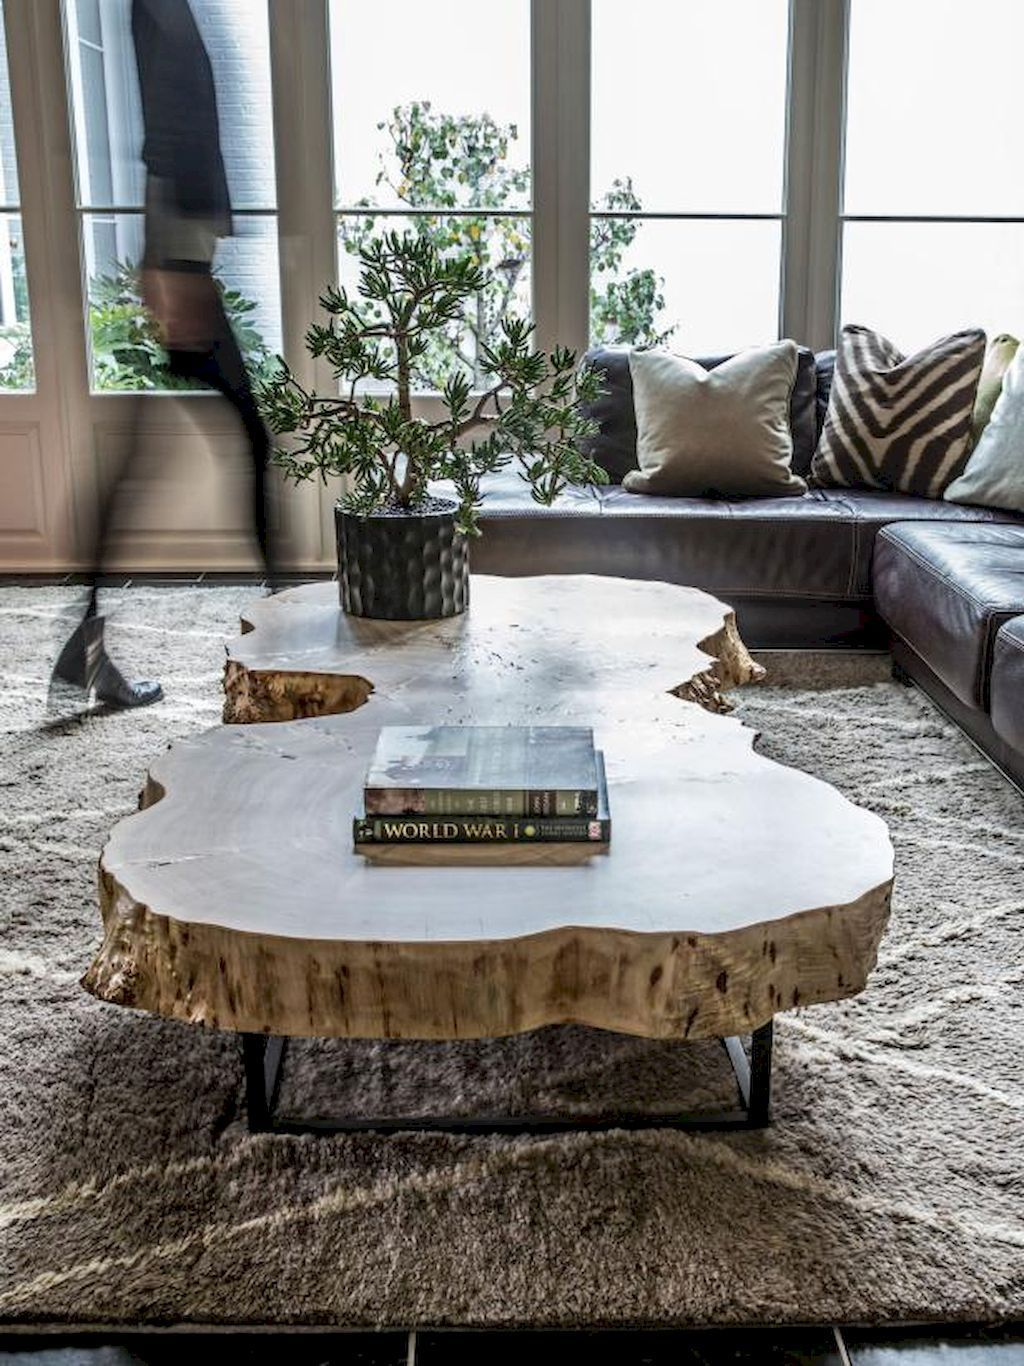 11 Free Modern Coffee Table Ideas You Can Diy Today Moderncoffeetable Coffeetableideas C Wooden Coffee Table Designs Coffee Table Farmhouse Coffee Table [ 1366 x 1024 Pixel ]